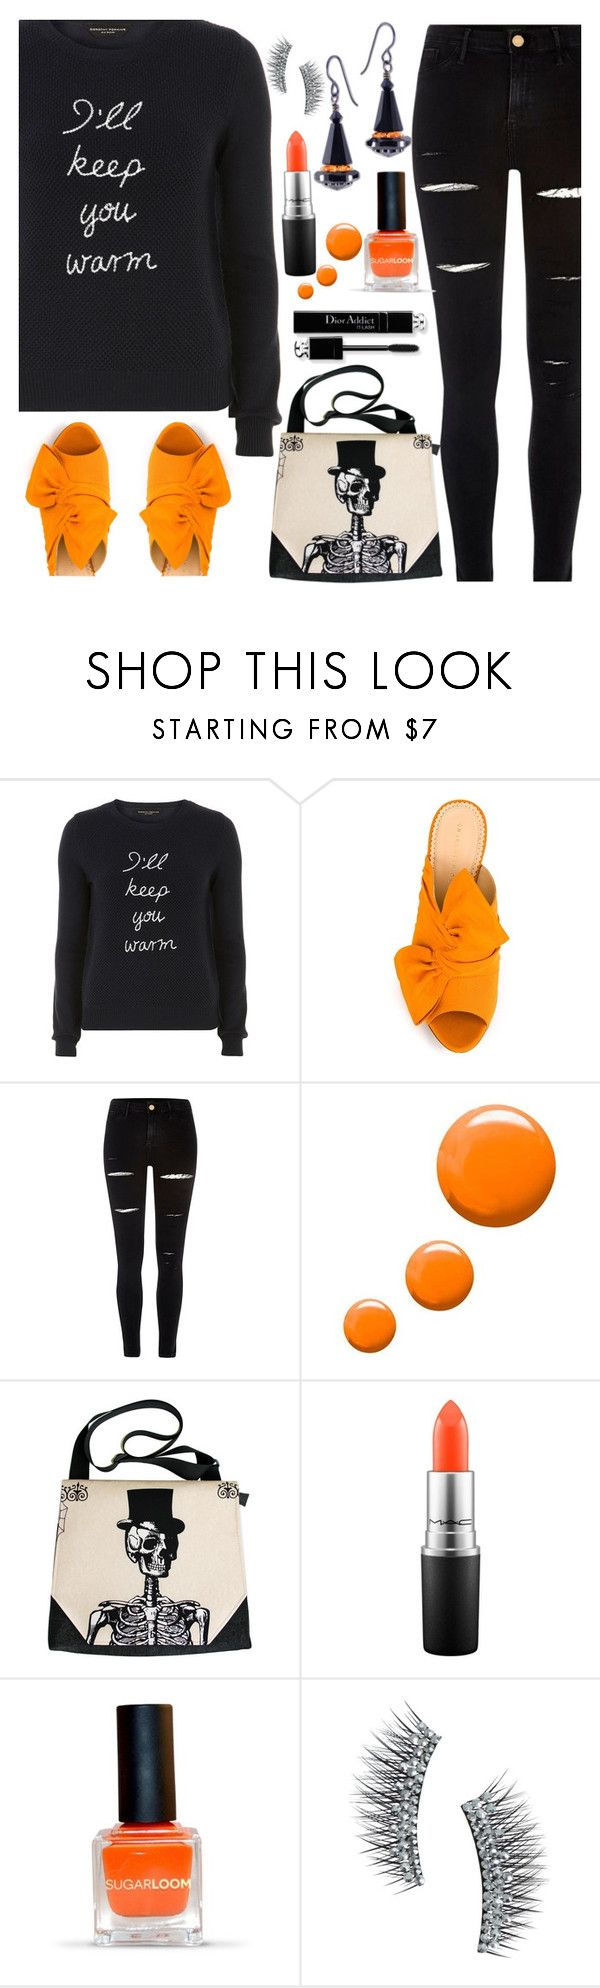 """""""I'll Keep You Warm"""" by deborah-calton ❤ liked on Polyvore featuring Dorothy Perkins, Charlotte Olympia, River Island, Topshop, MAC Cosmetics and Kre-at Beauty"""